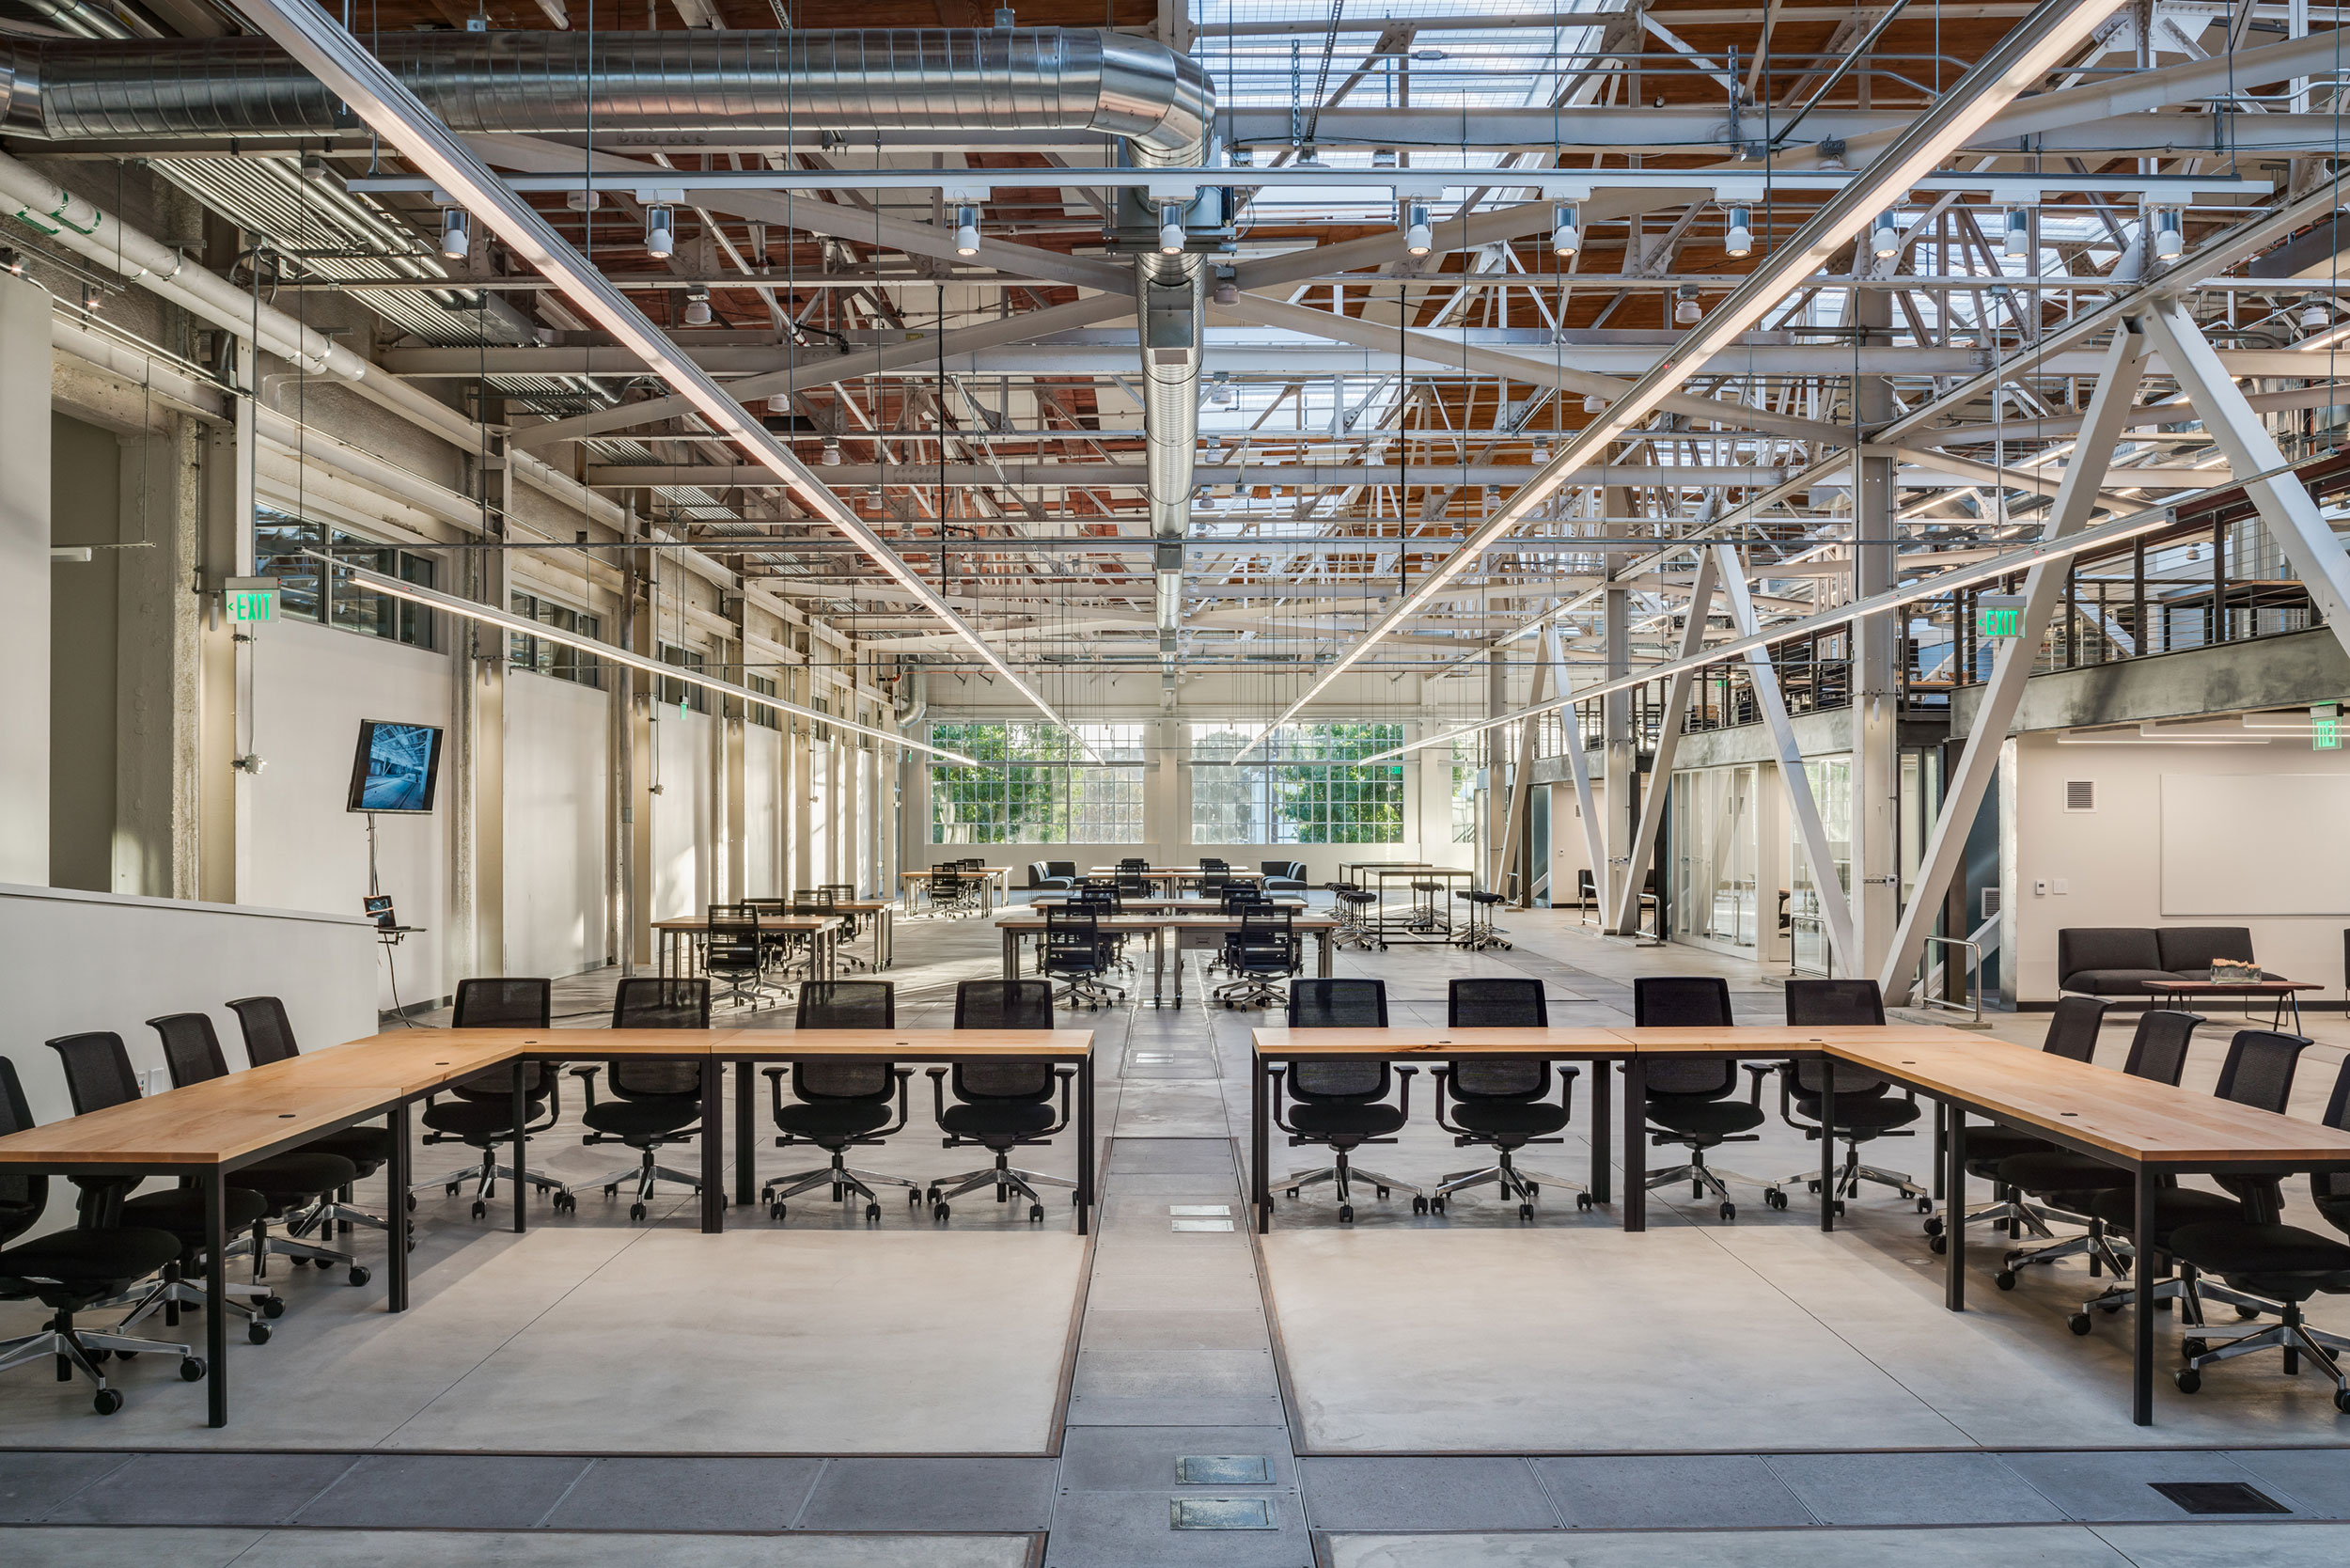 San Francisco Workplace, Office, Adaptive Reuse, Tech Company, Open Workspace, Flexible Office, Natural Light, Steel Truss